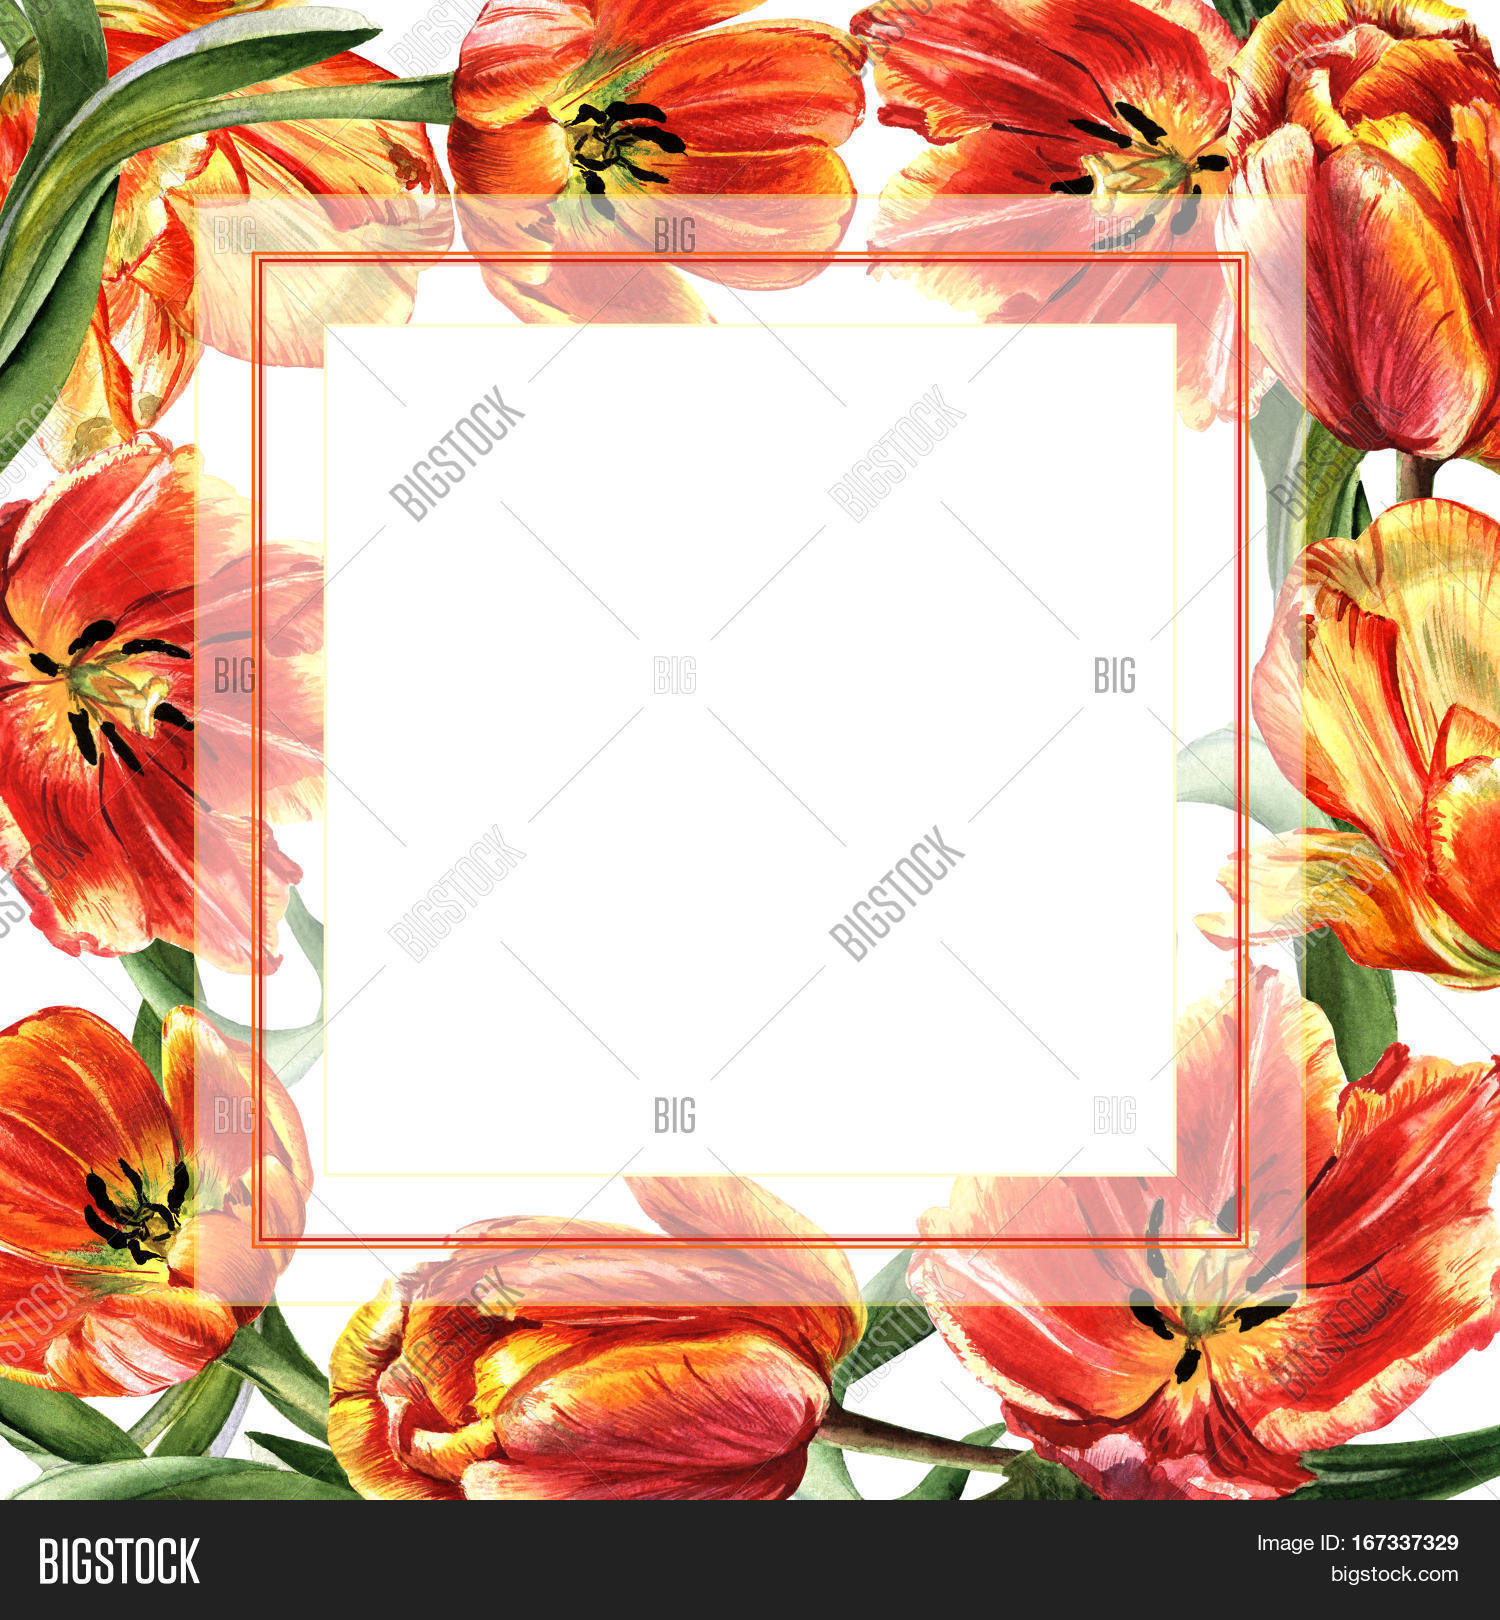 Wildflower Tulip Flower Frame In A Watercolor Style Isolated Full Name Of The Plant